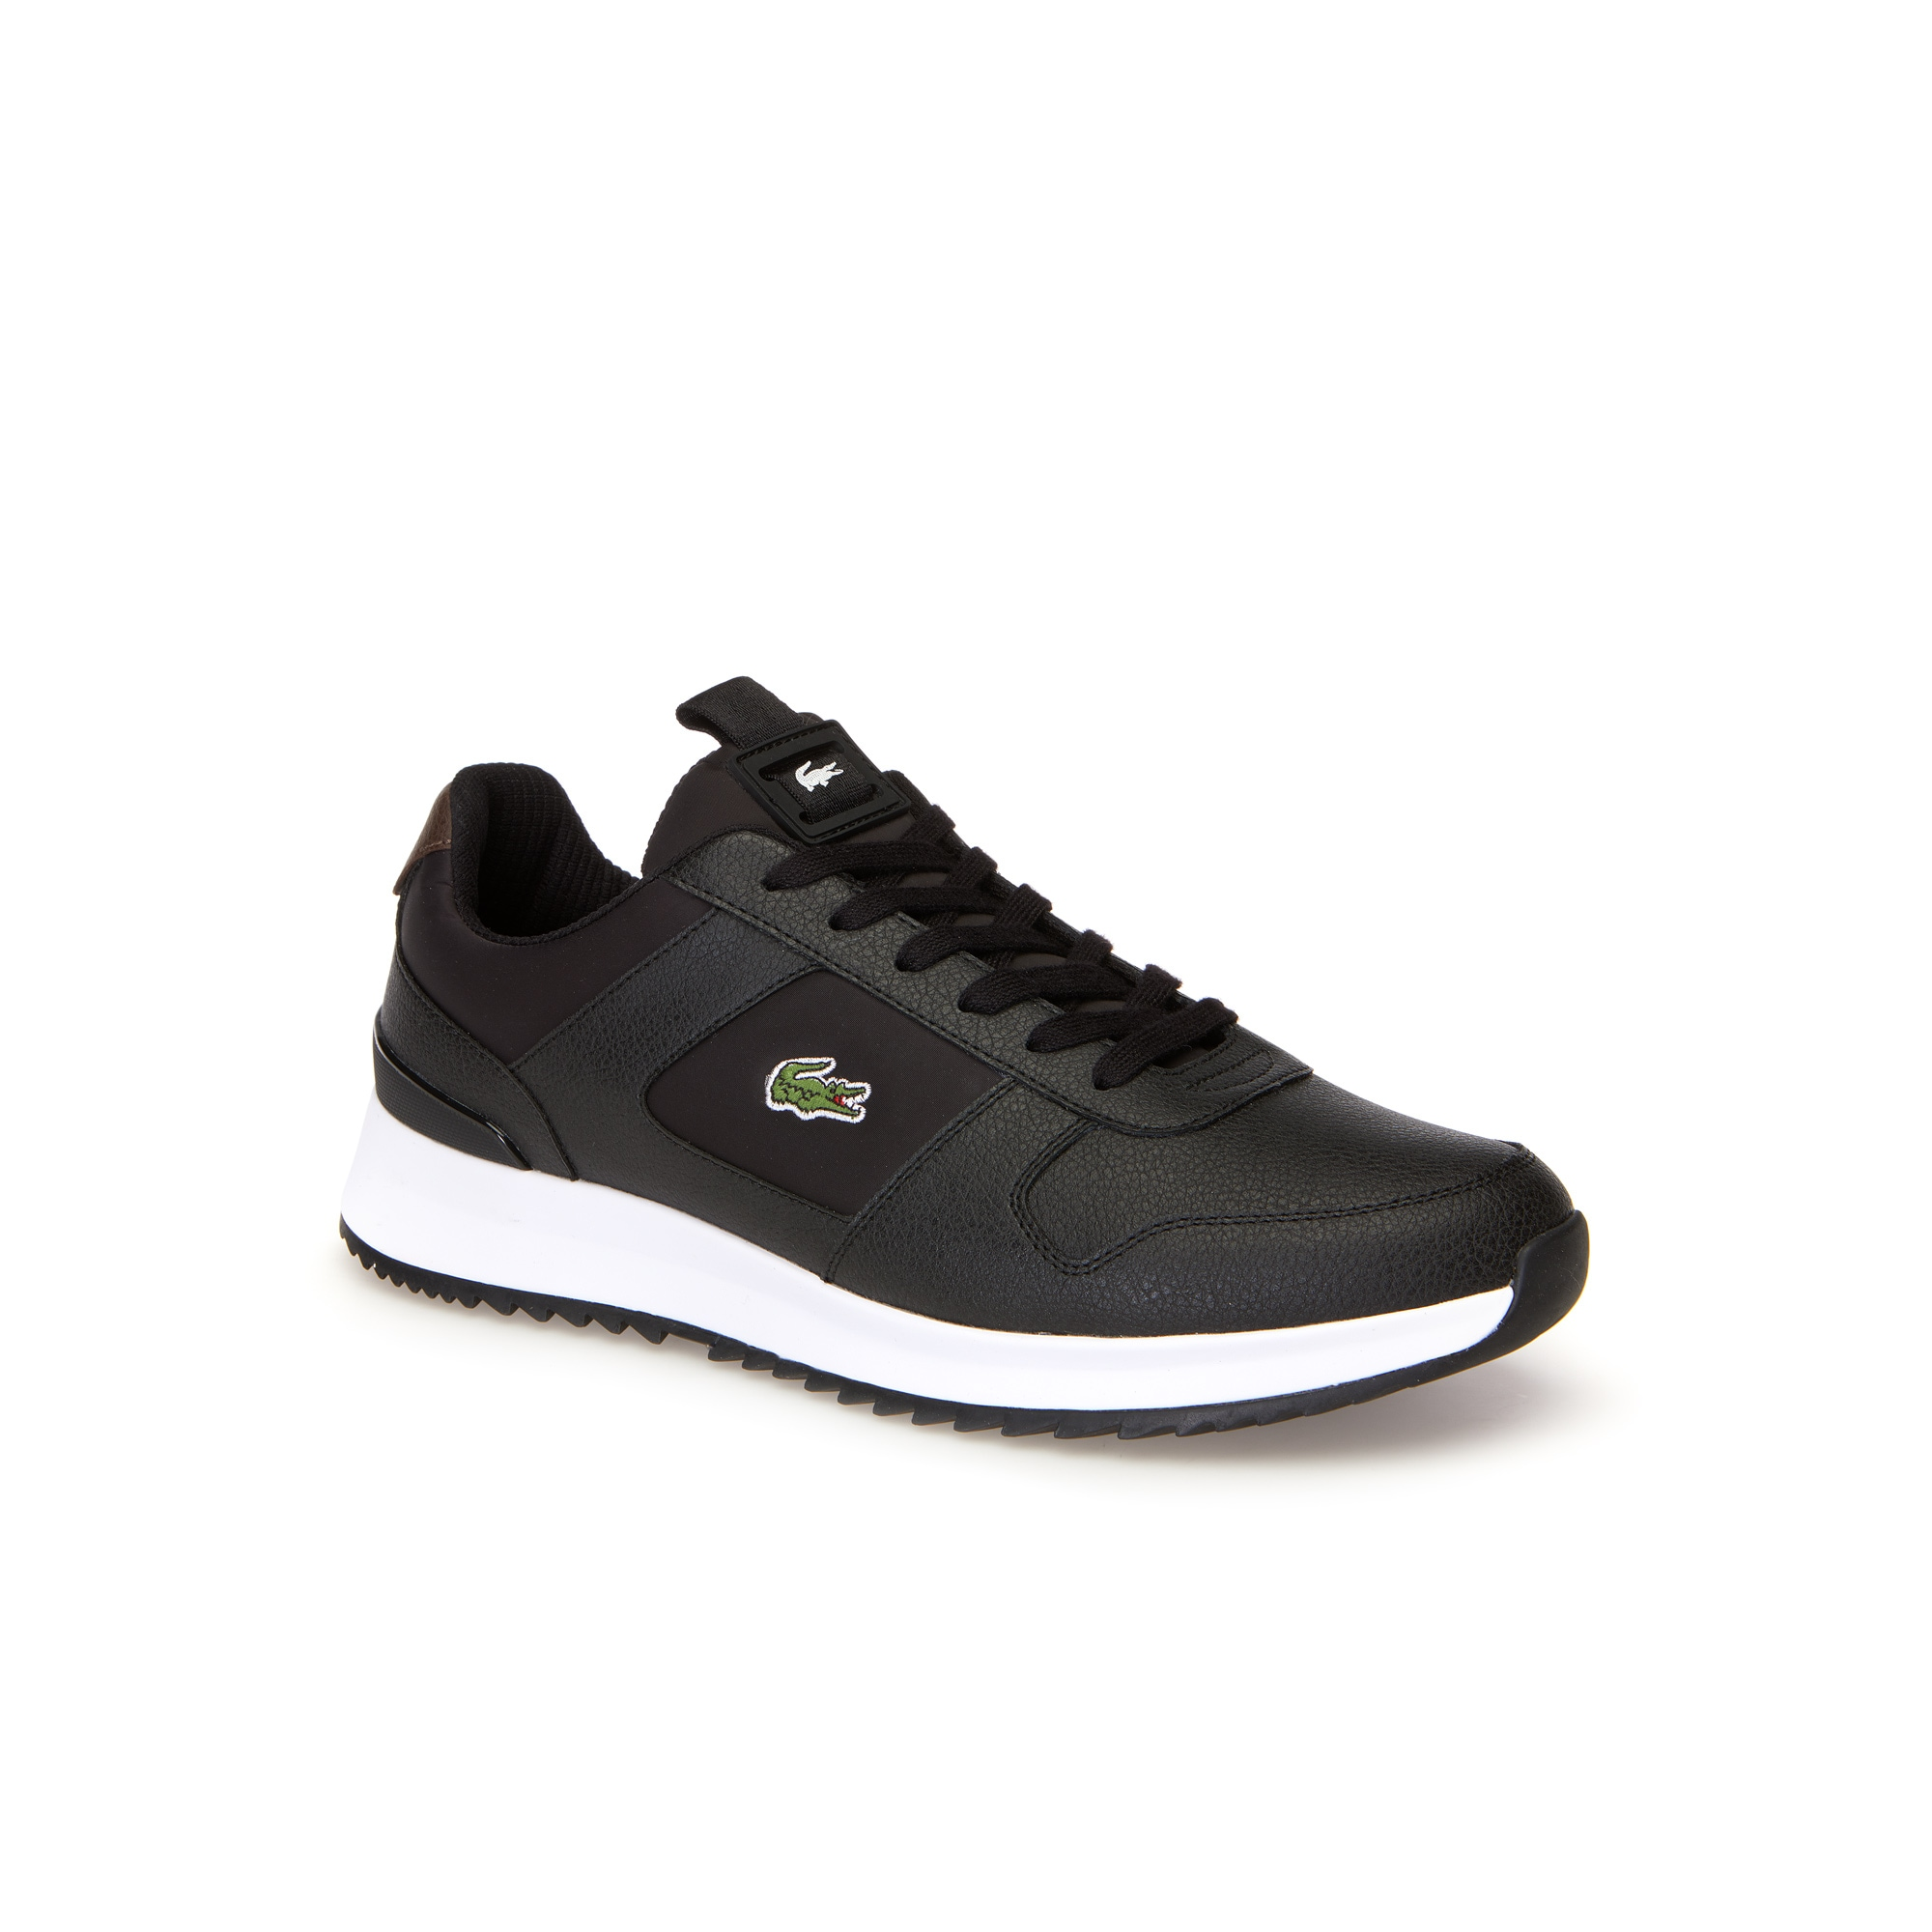 Chaussures Collection Homme Collection Lacoste Homme Chaussures Chaussures Lacoste xPTqwRp